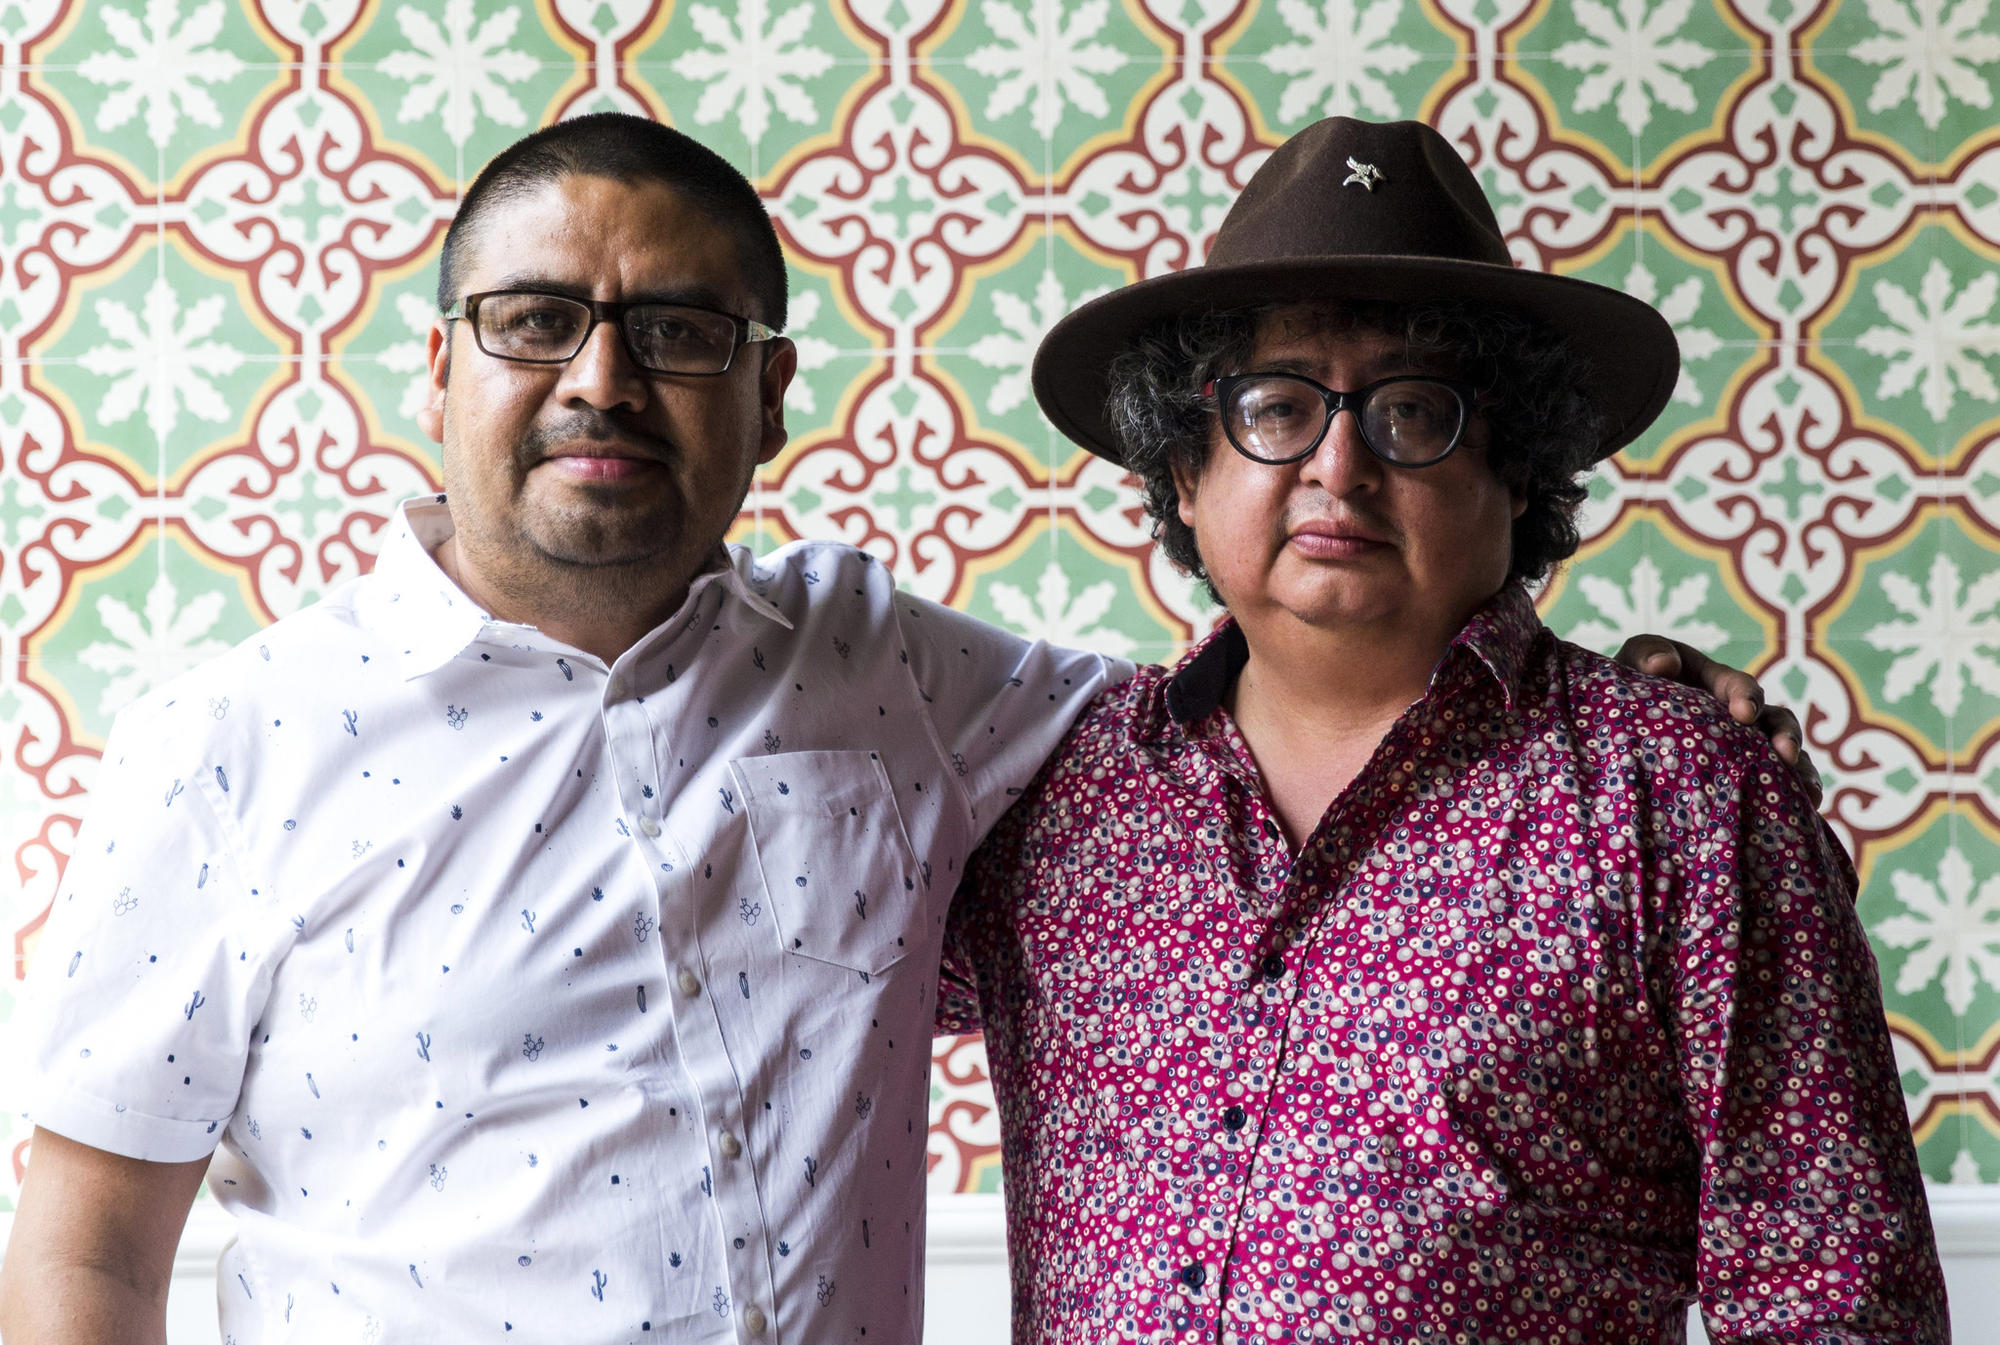 Mezcal crawl with Ulises Torrentera